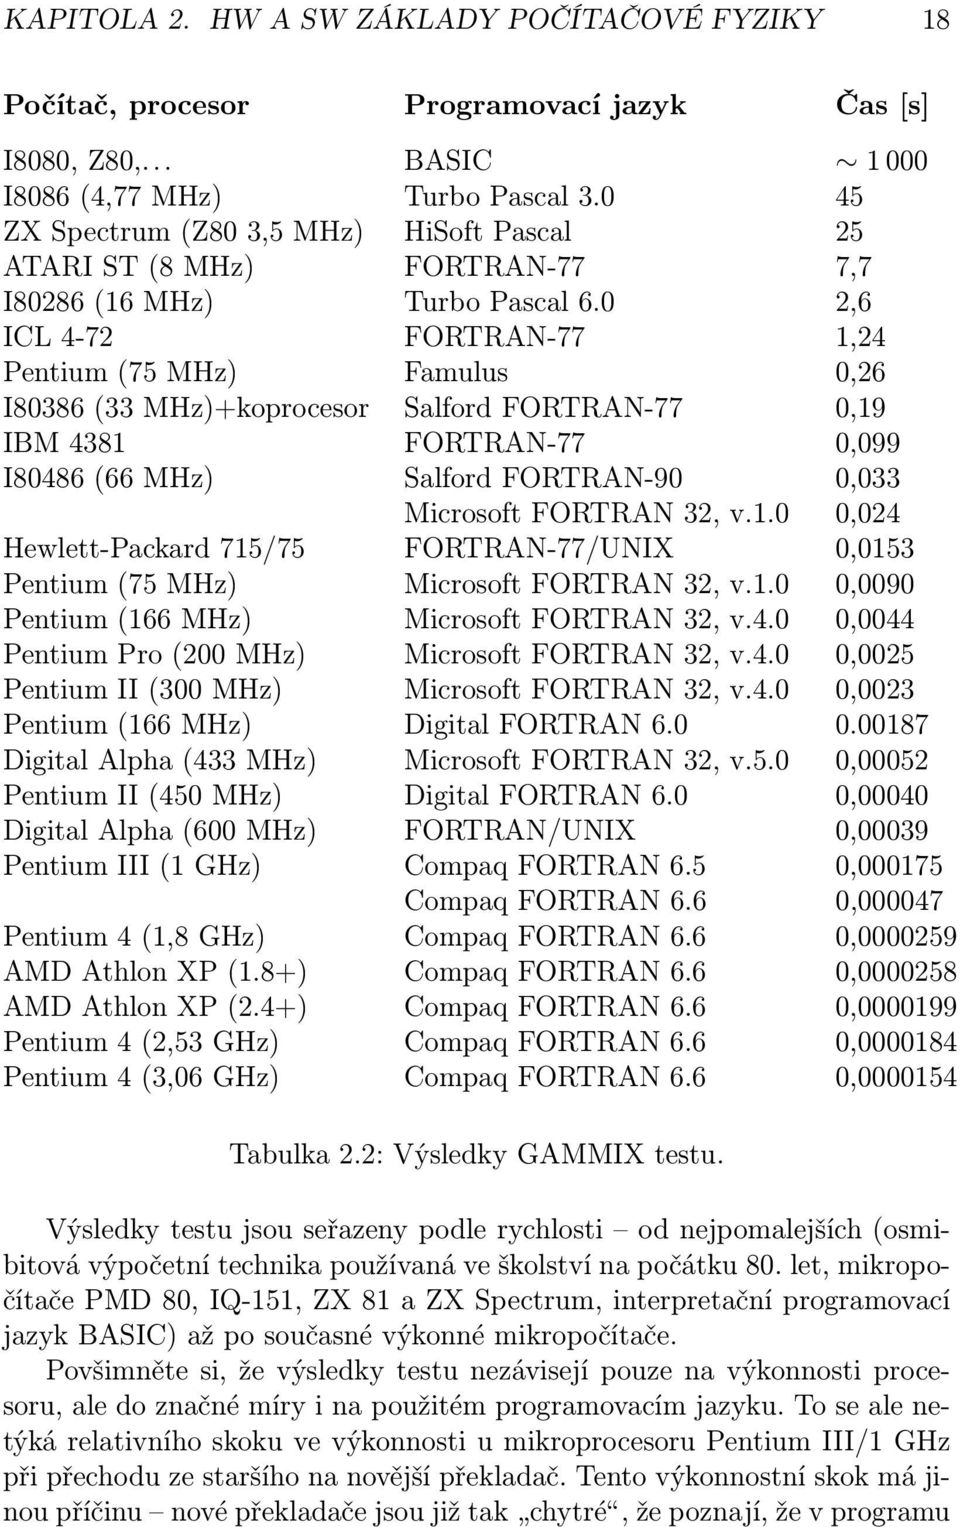 0 2,6 ICL 4-72 FORTRAN-77 1,24 Pentium (75 MHz) Famulus 0,26 I80386 (33 MHz)+koprocesor Salford FORTRAN-77 0,19 IBM 4381 FORTRAN-77 0,099 I80486 (66 MHz) Salford FORTRAN-90 0,033 Microsoft FORTRAN